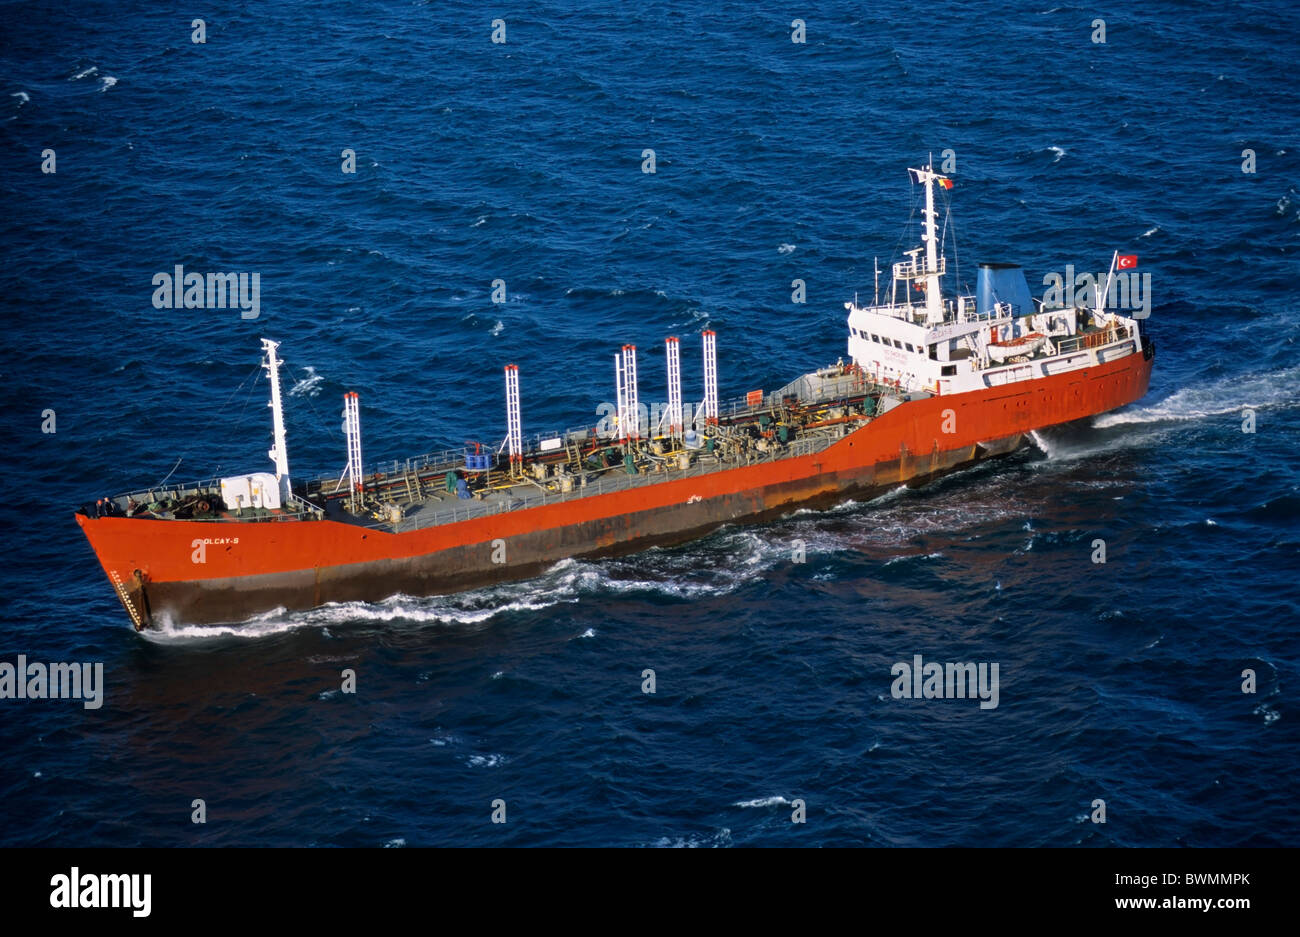 Oil tanker at sea - Stock Image